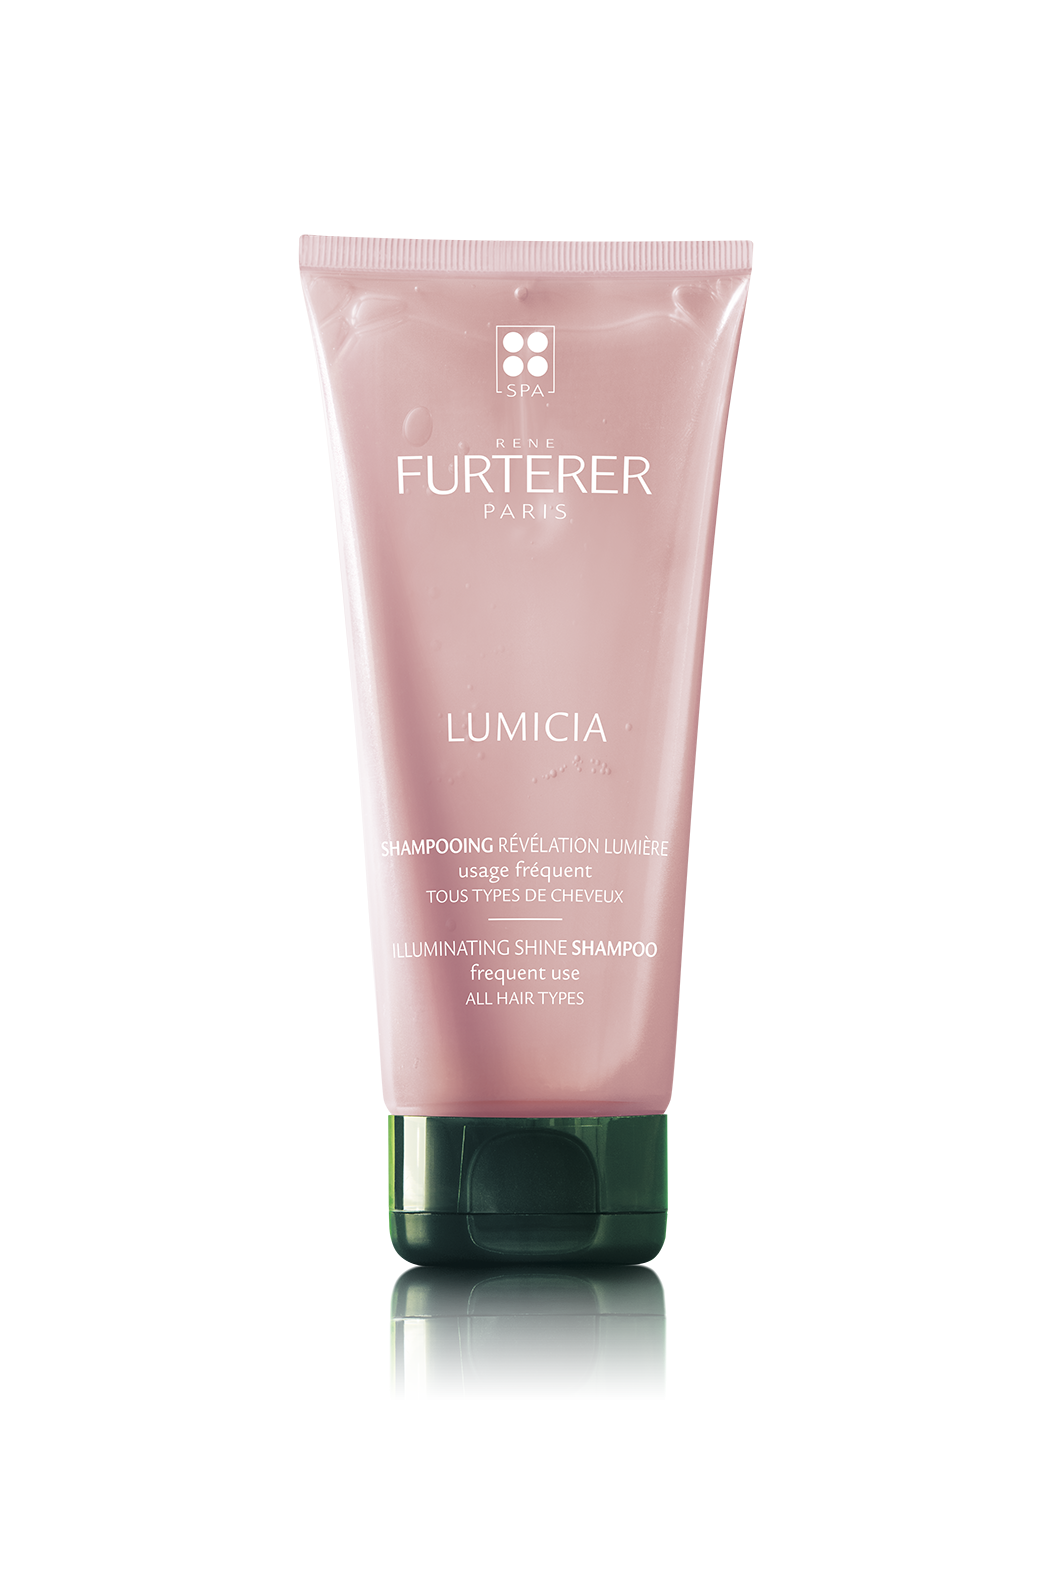 LUMICIA Illuminating shine shampoo René Furterer